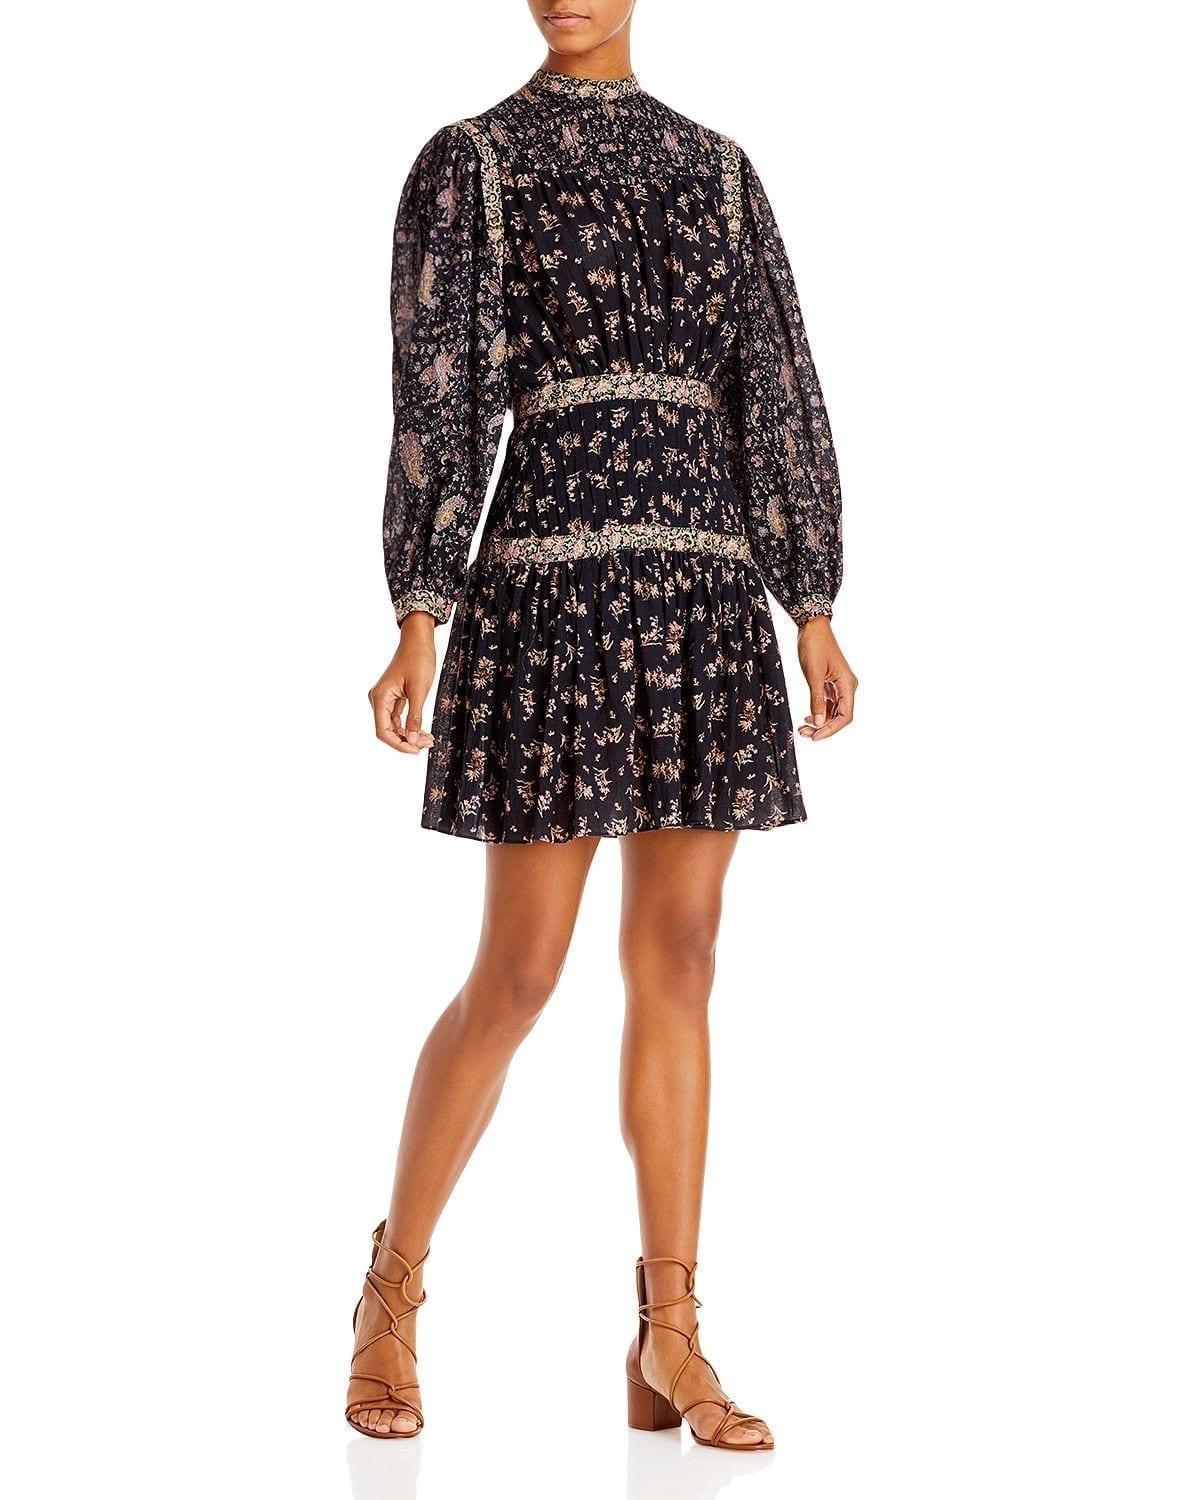 REBECCA TAYLOR La Vie Mixed Print Dress